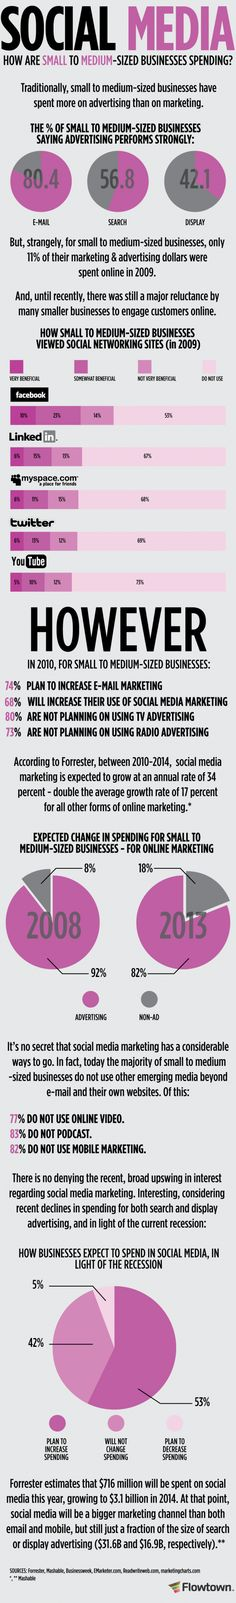 Social media marketing seems to be an increasingly prevalent buzz word, and for good reason. What could still rightfully be referred to as an emerging industry, or new marketing avenue, social media marketing is growing faster than any other form of online marketing — evidenced by the increased spending by marketers, and brands.